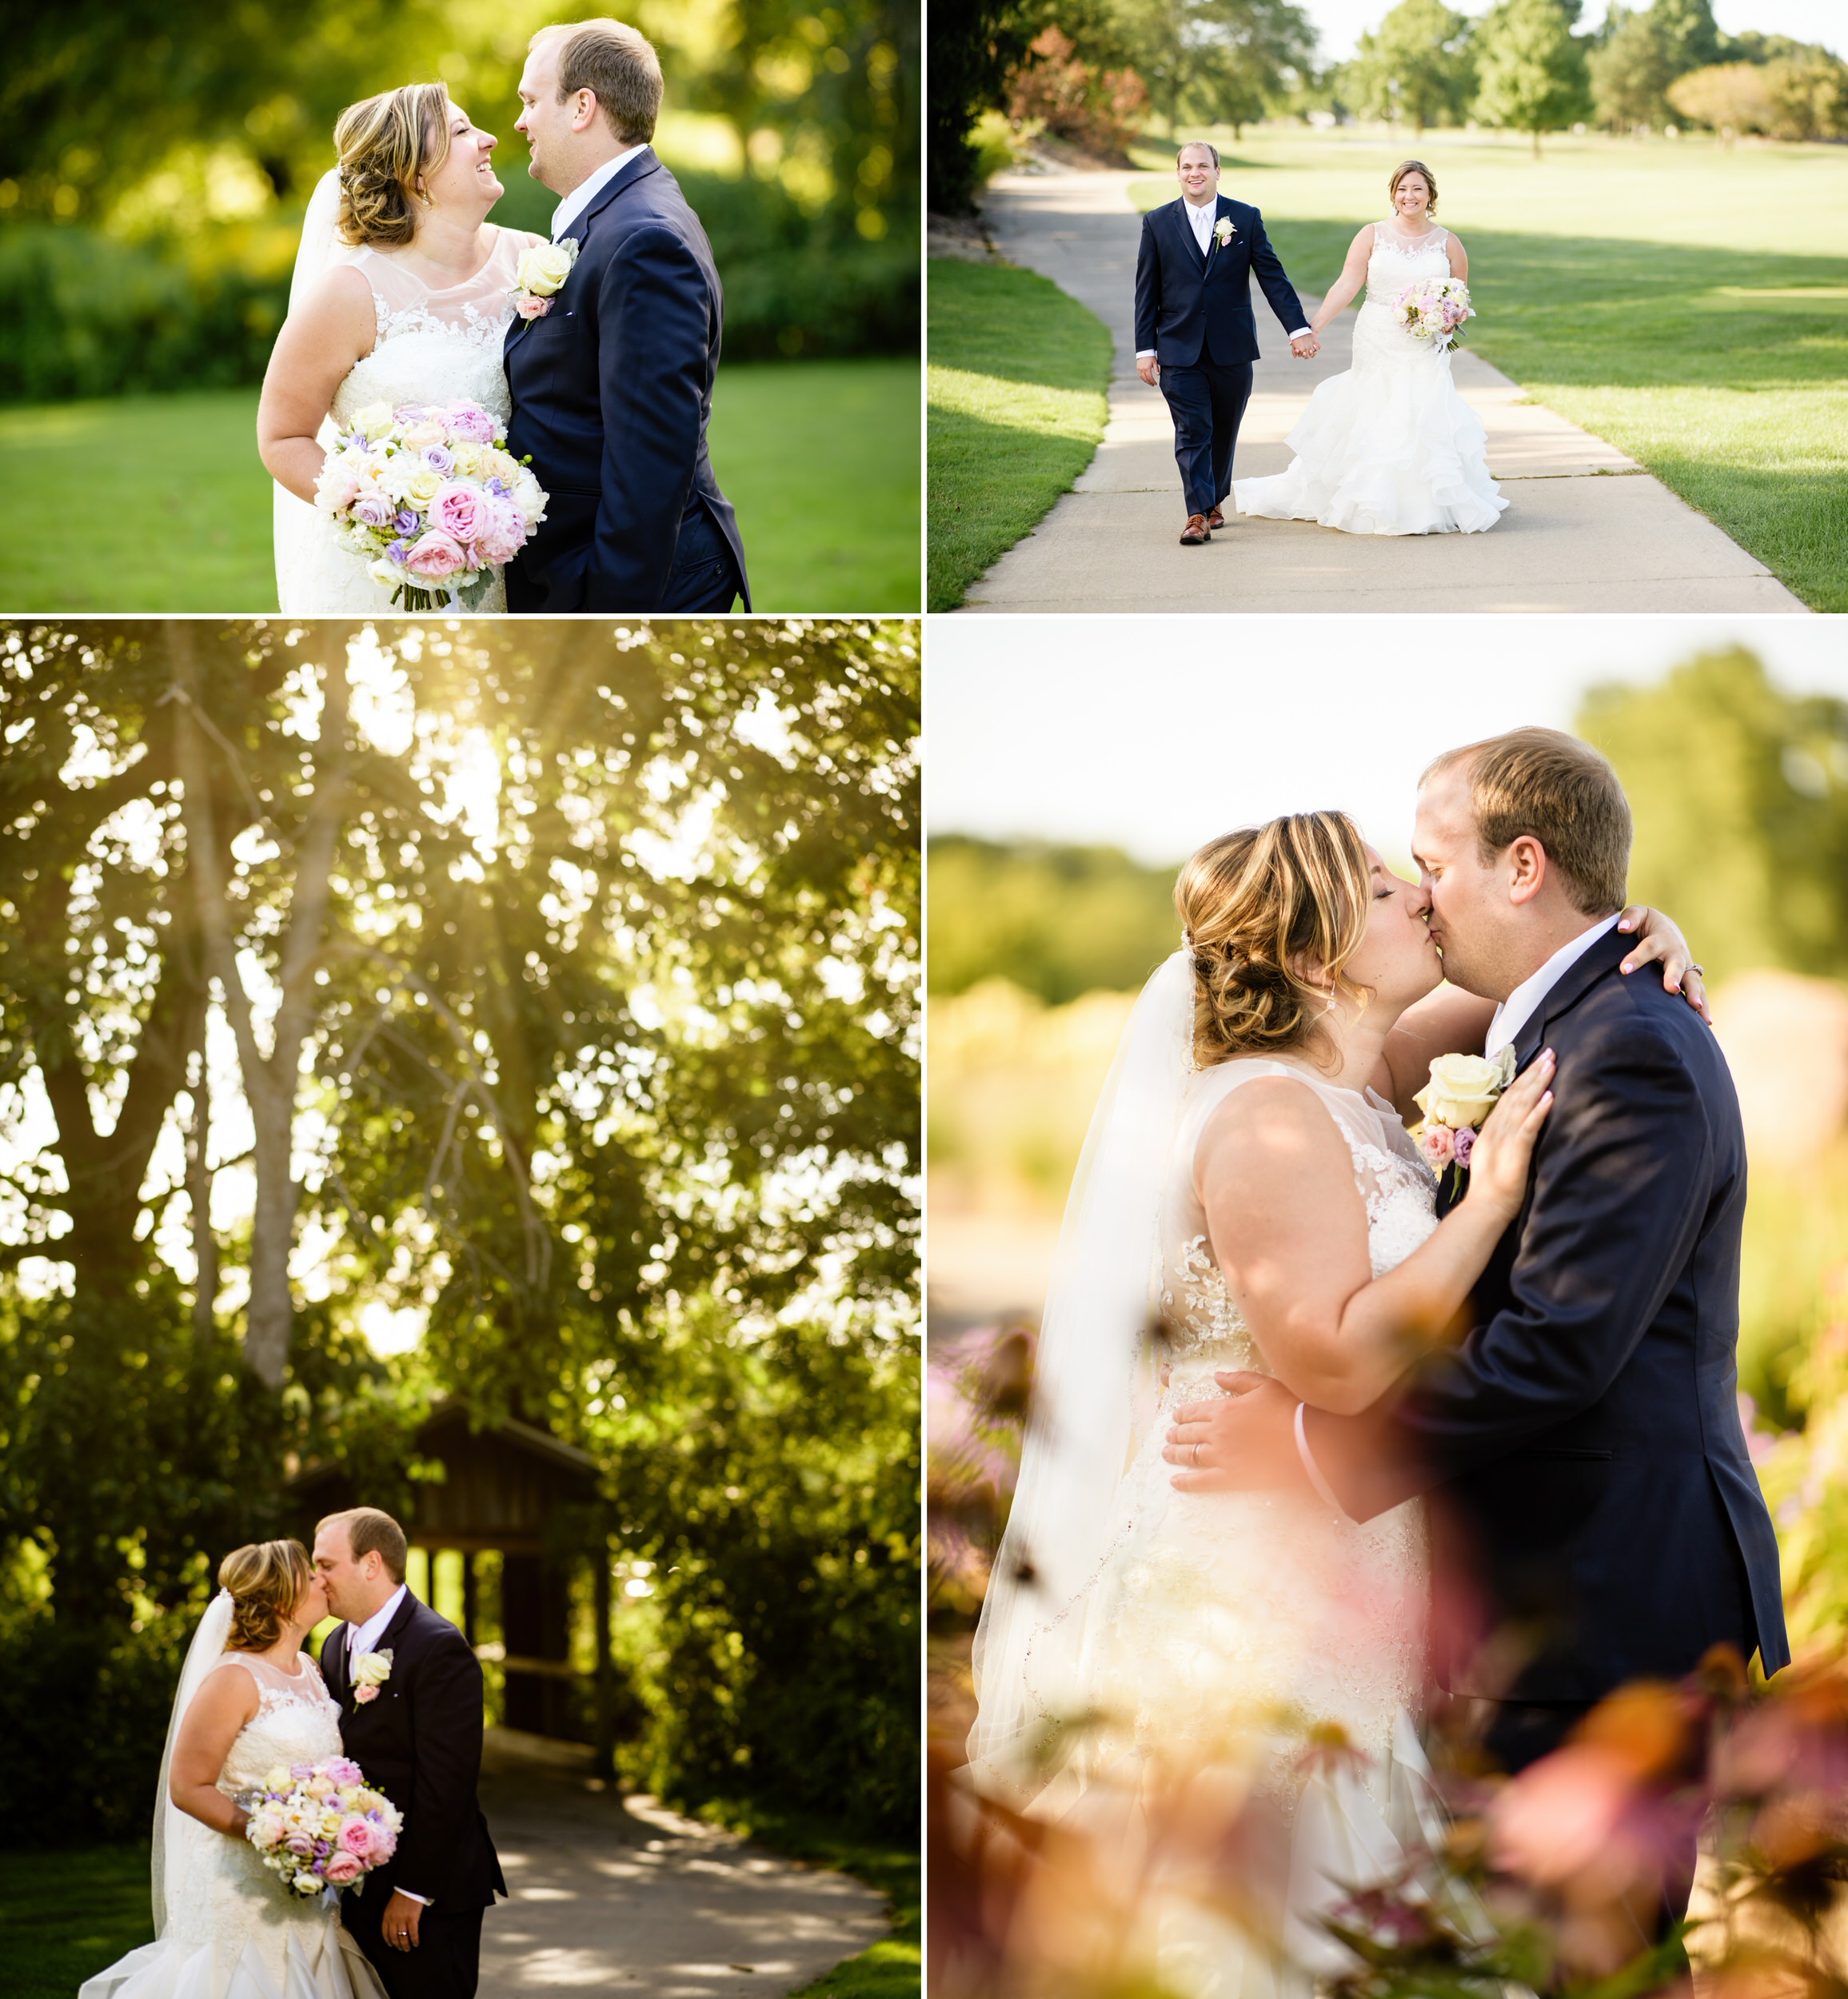 Wedding photos at Sand Creek Country Club in Chesterton, Indiana.